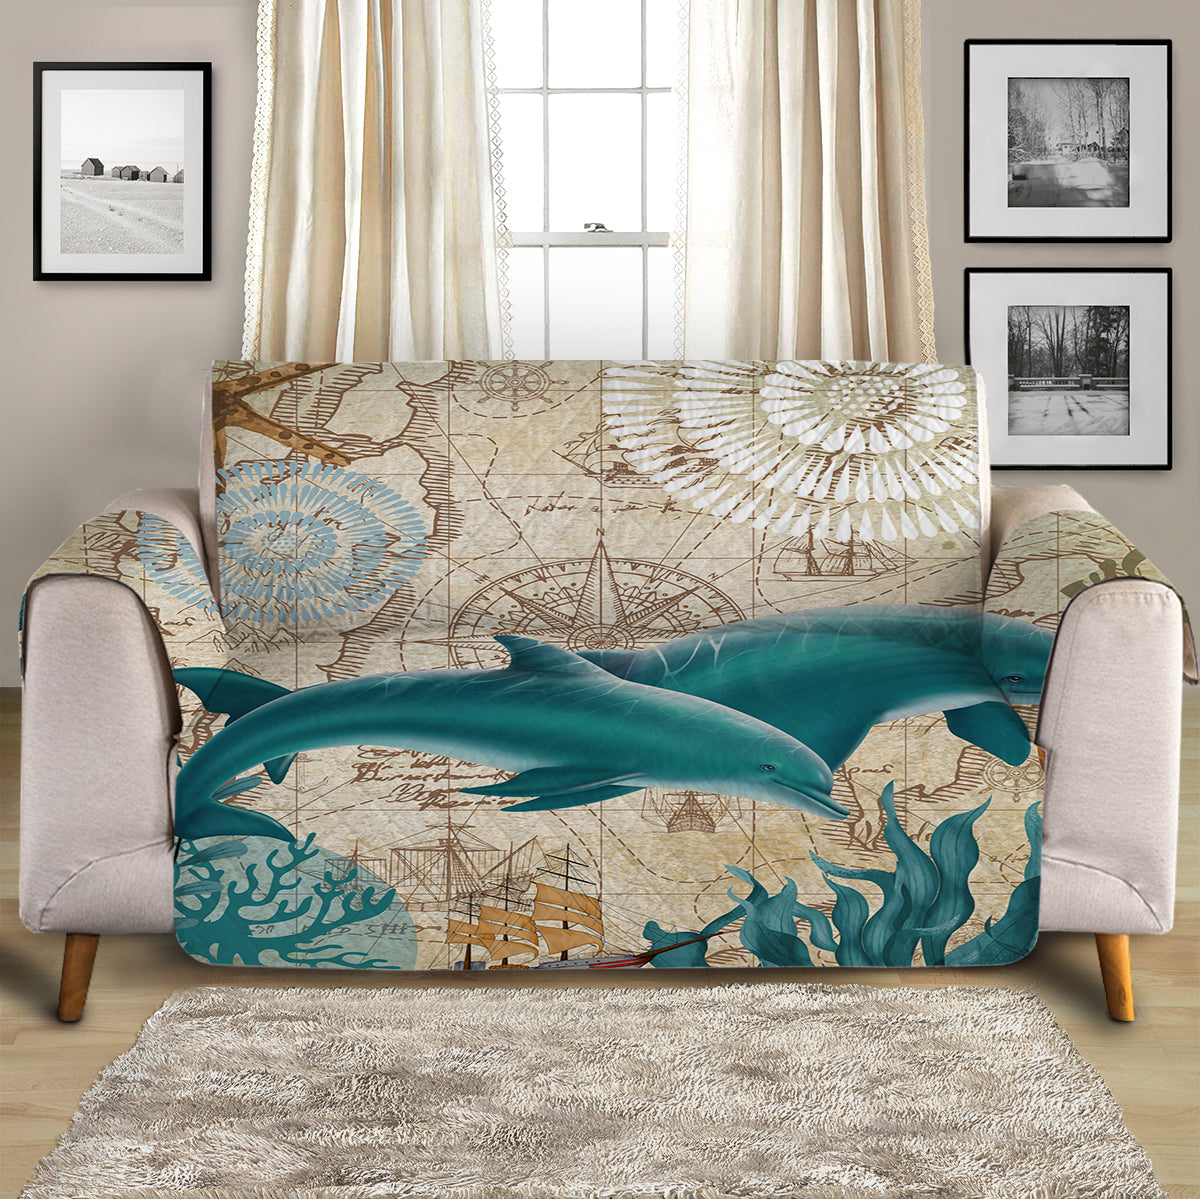 Dolphin Love Sofa Cover